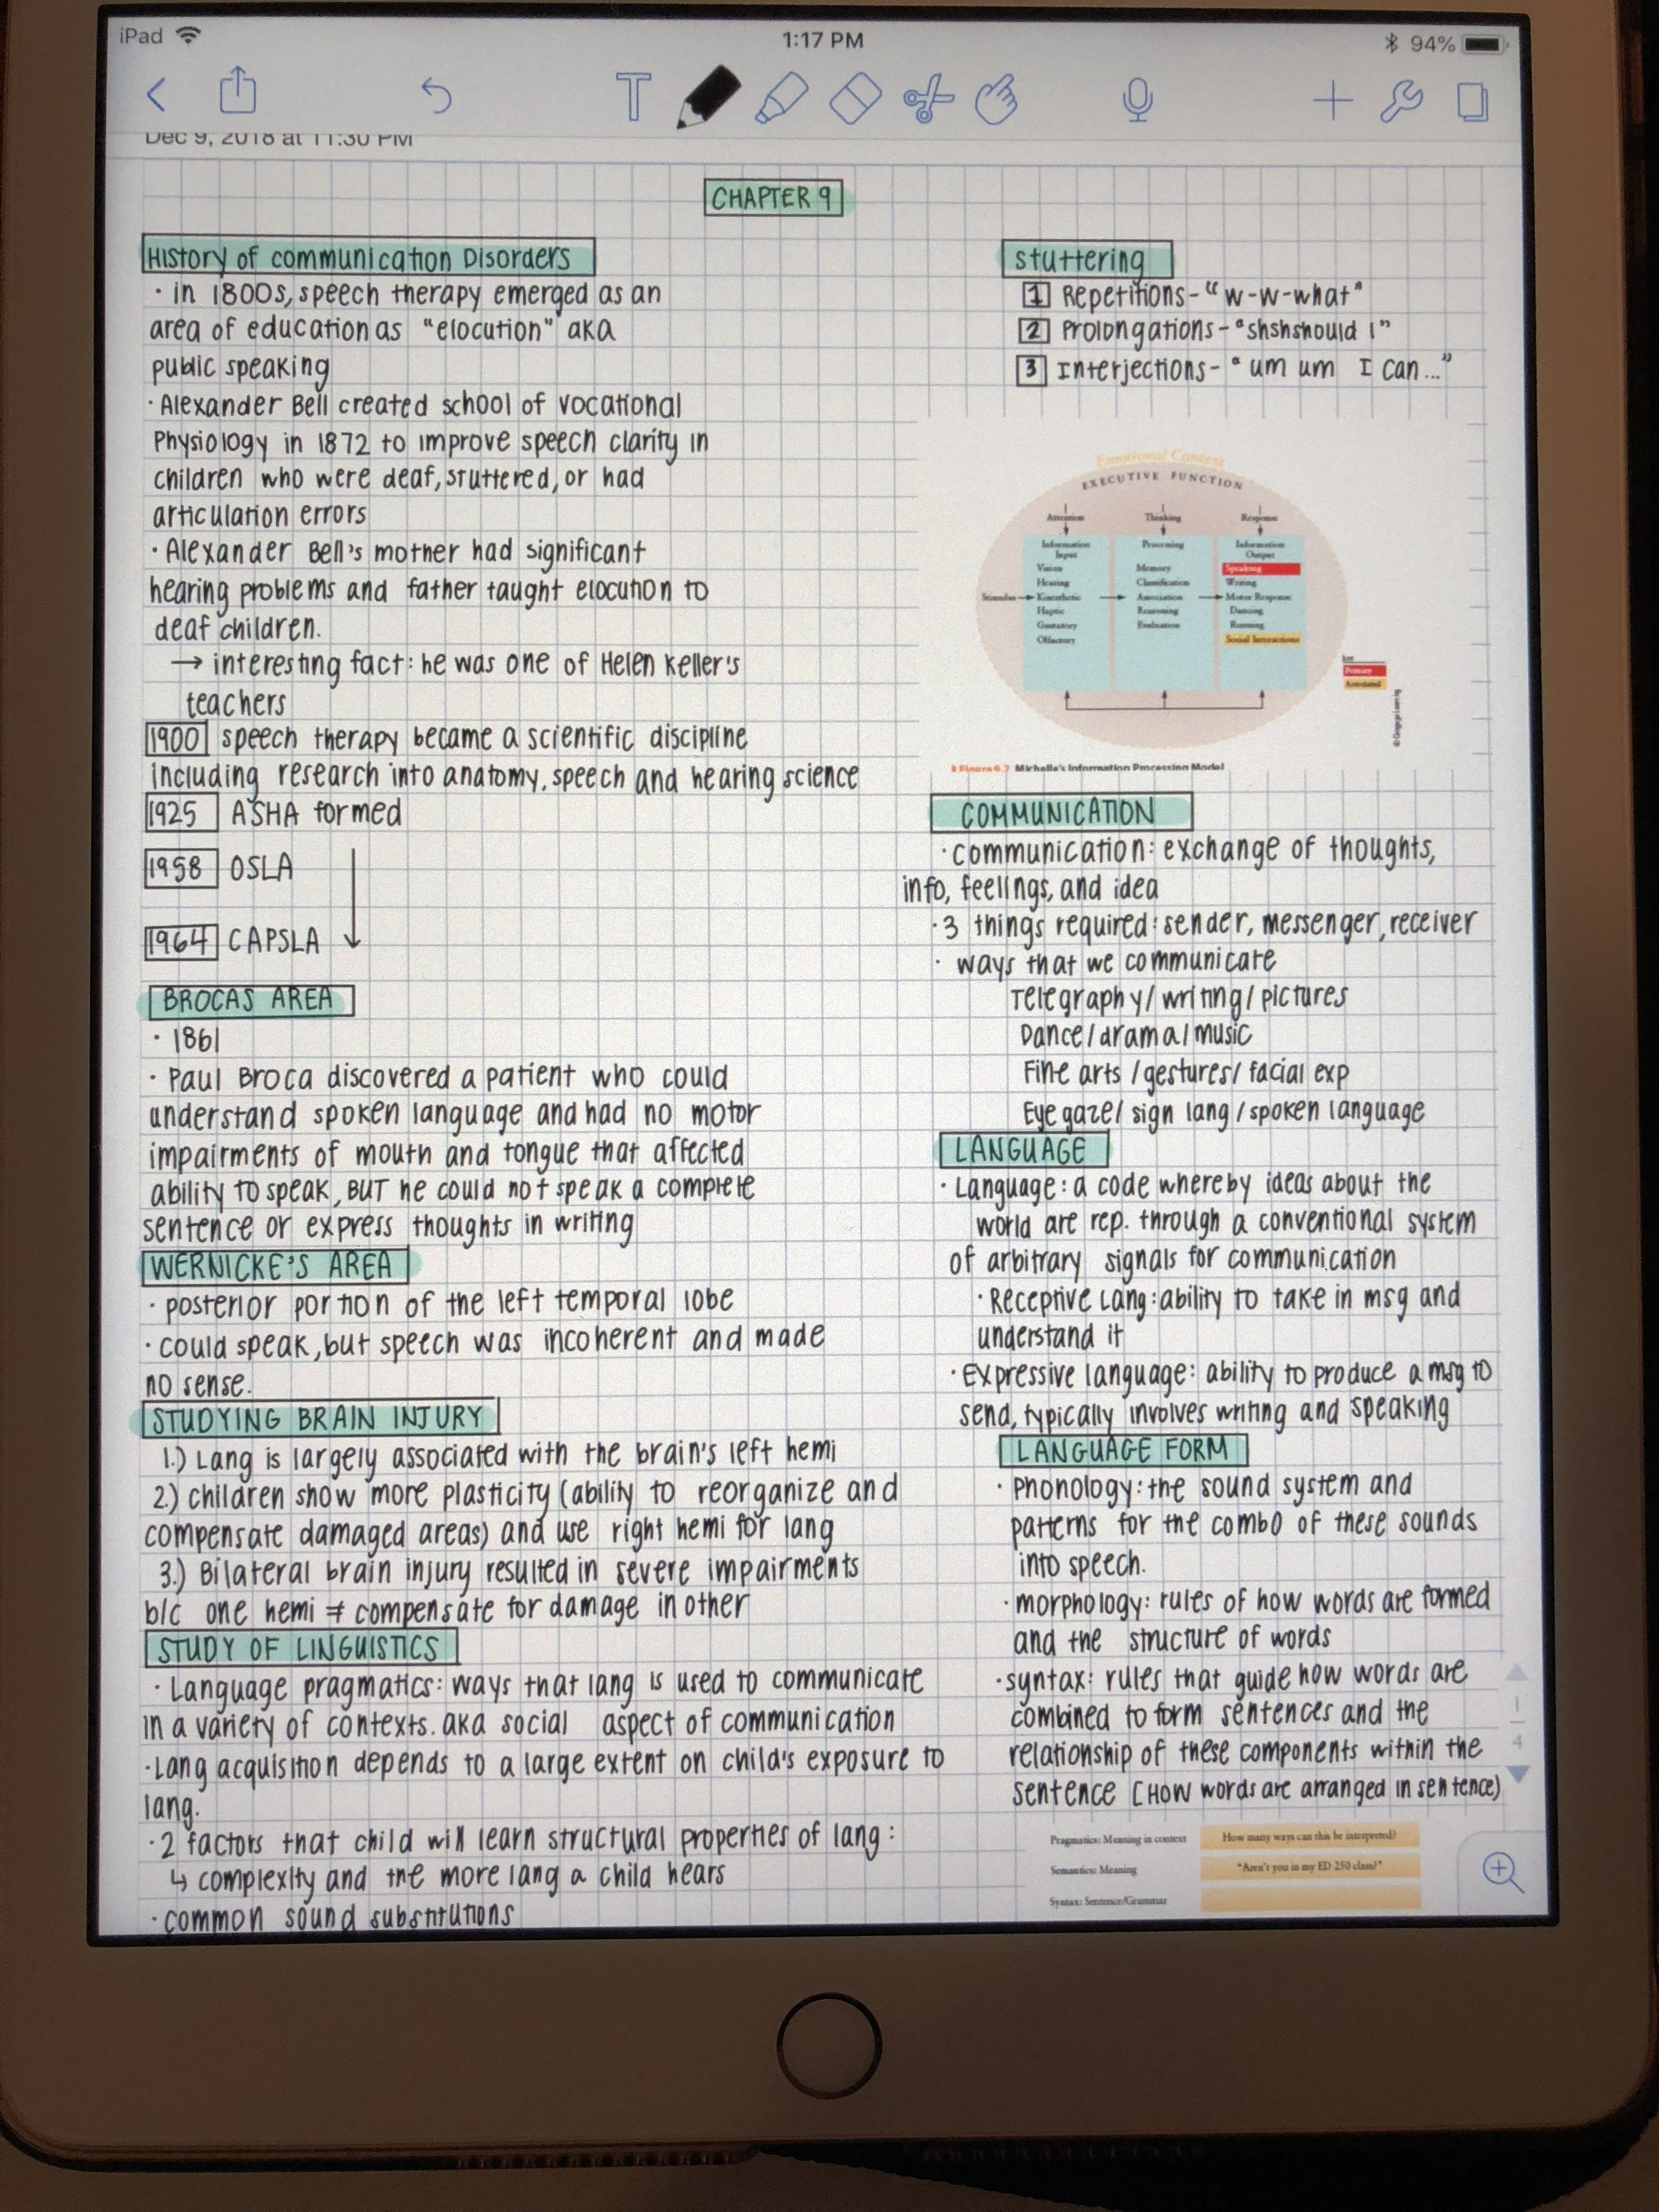 Pin On S C H O O L School Organization Notes Notes Inspiration Study Notes